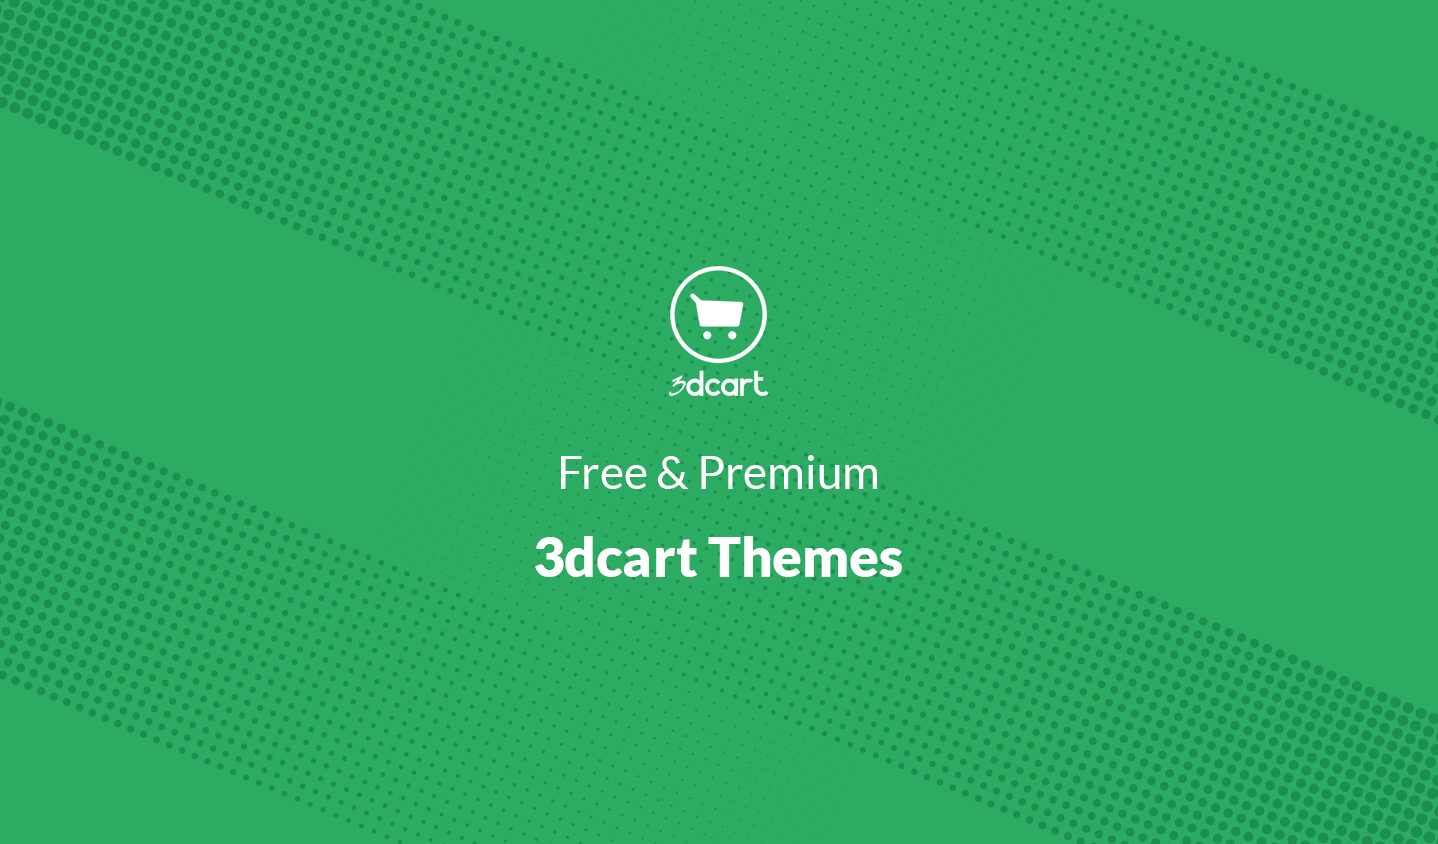 Free and Premium 3dcart Themes for Your Online Store